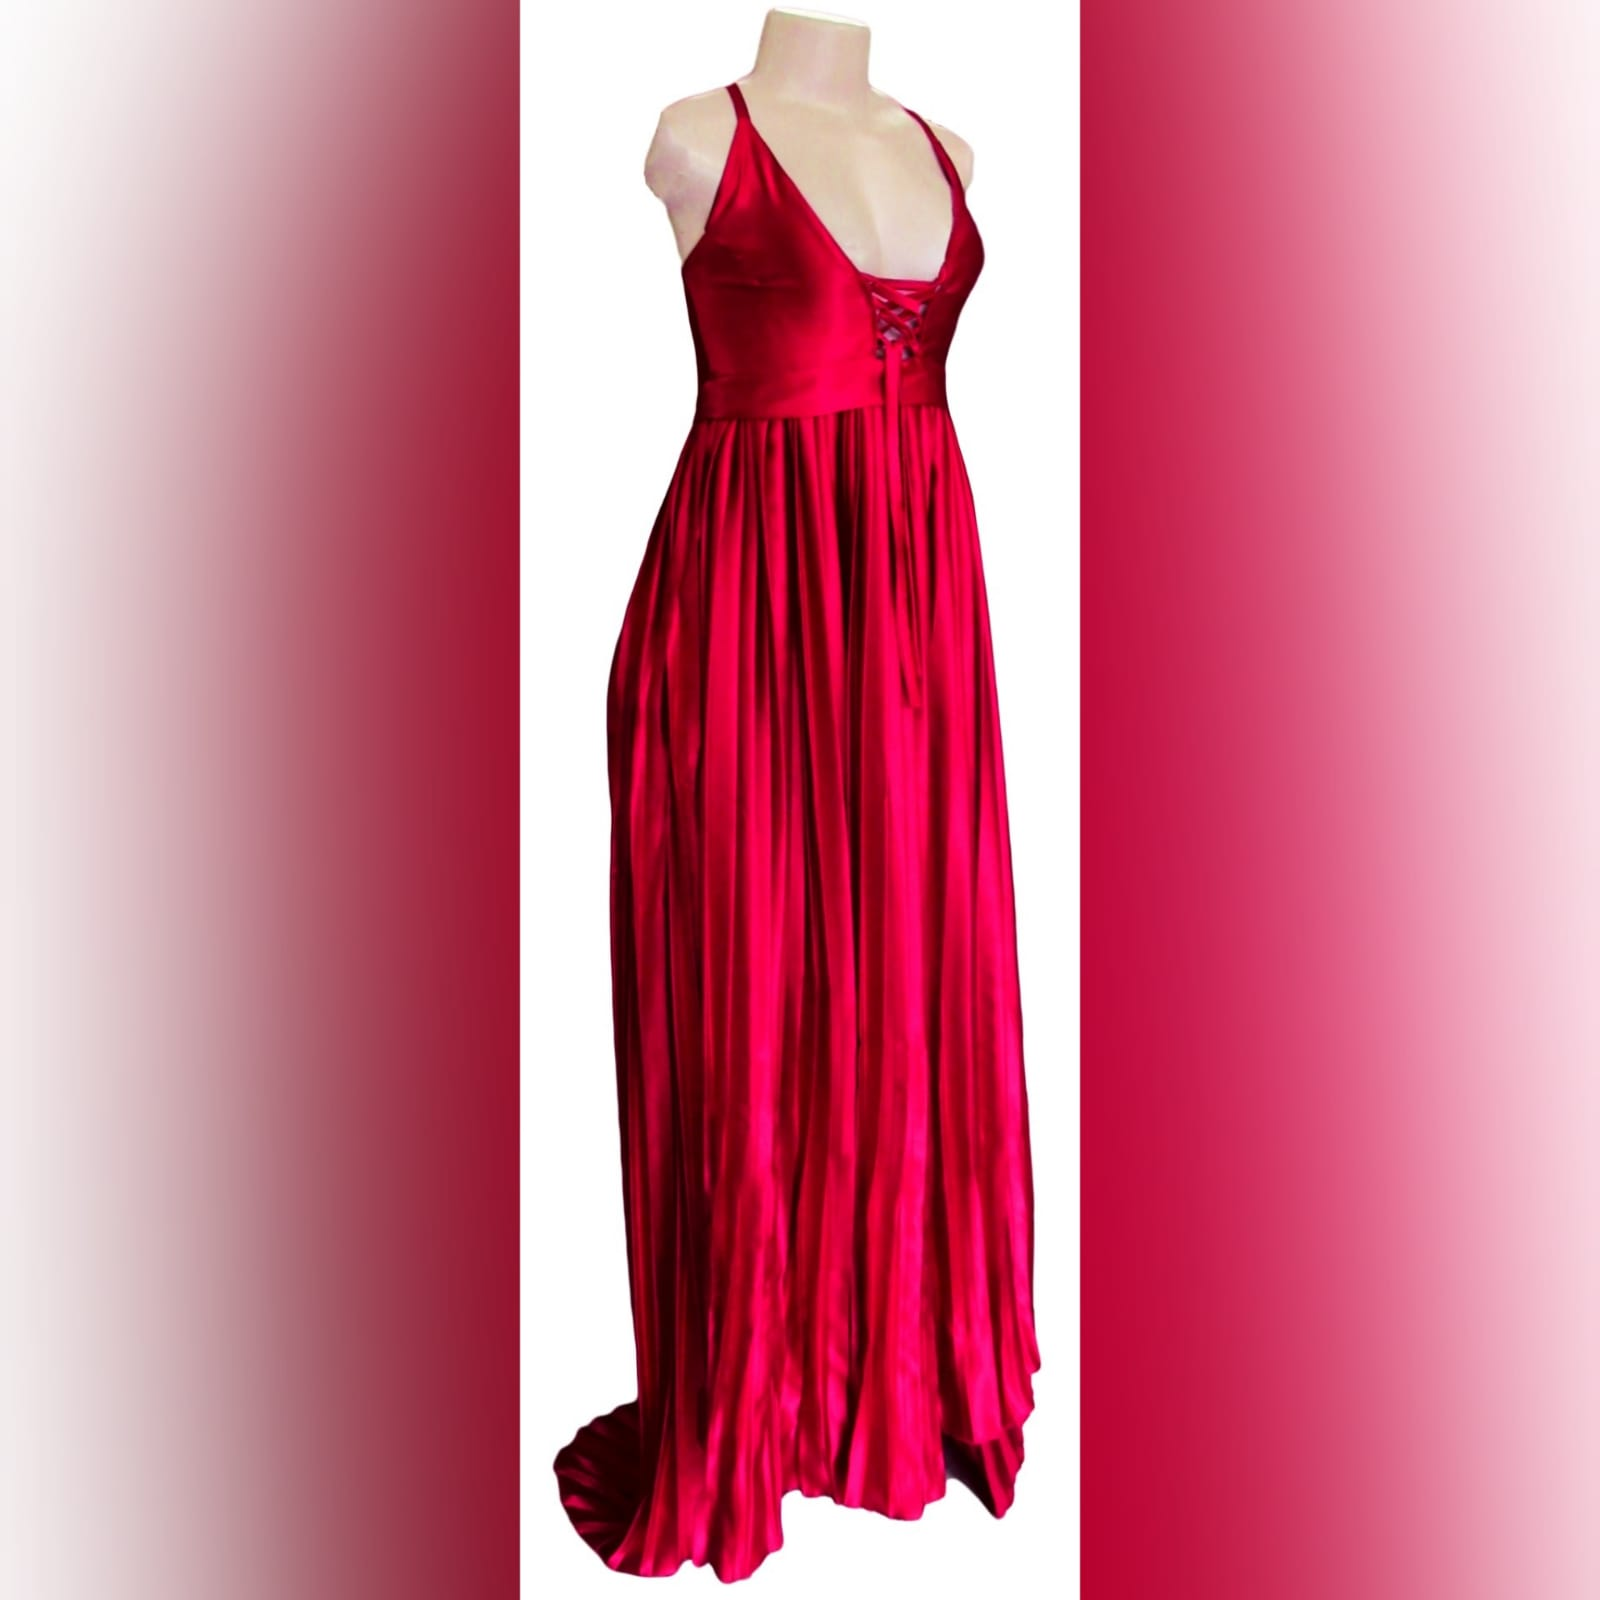 Red pleated satin long evening dress 5 red pleated satin long evening dress with a plunging neckline that closes with a lace-up. Rounded open back. Flowy pleated bottom with a small train.